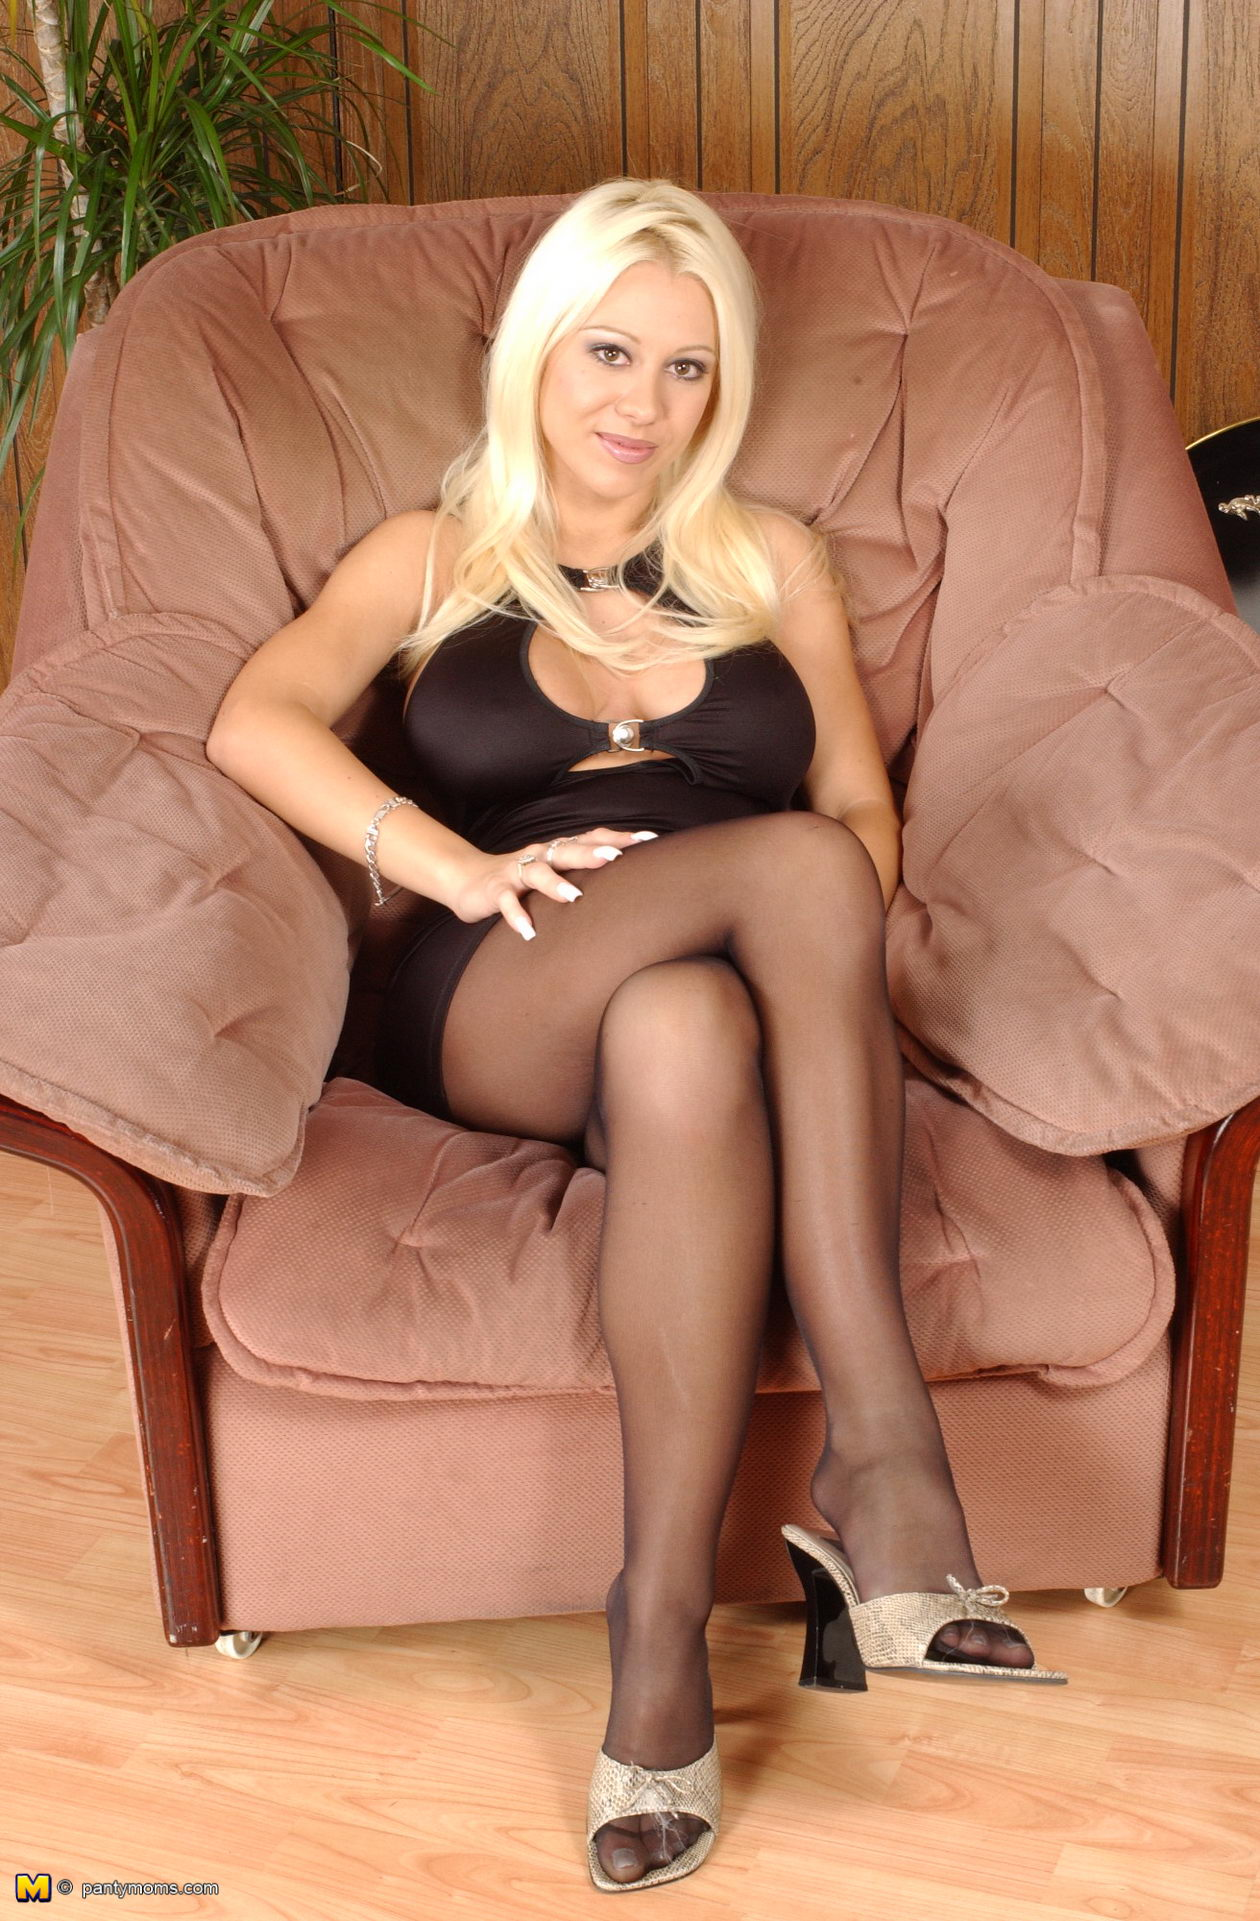 Legs Pantyhose Between